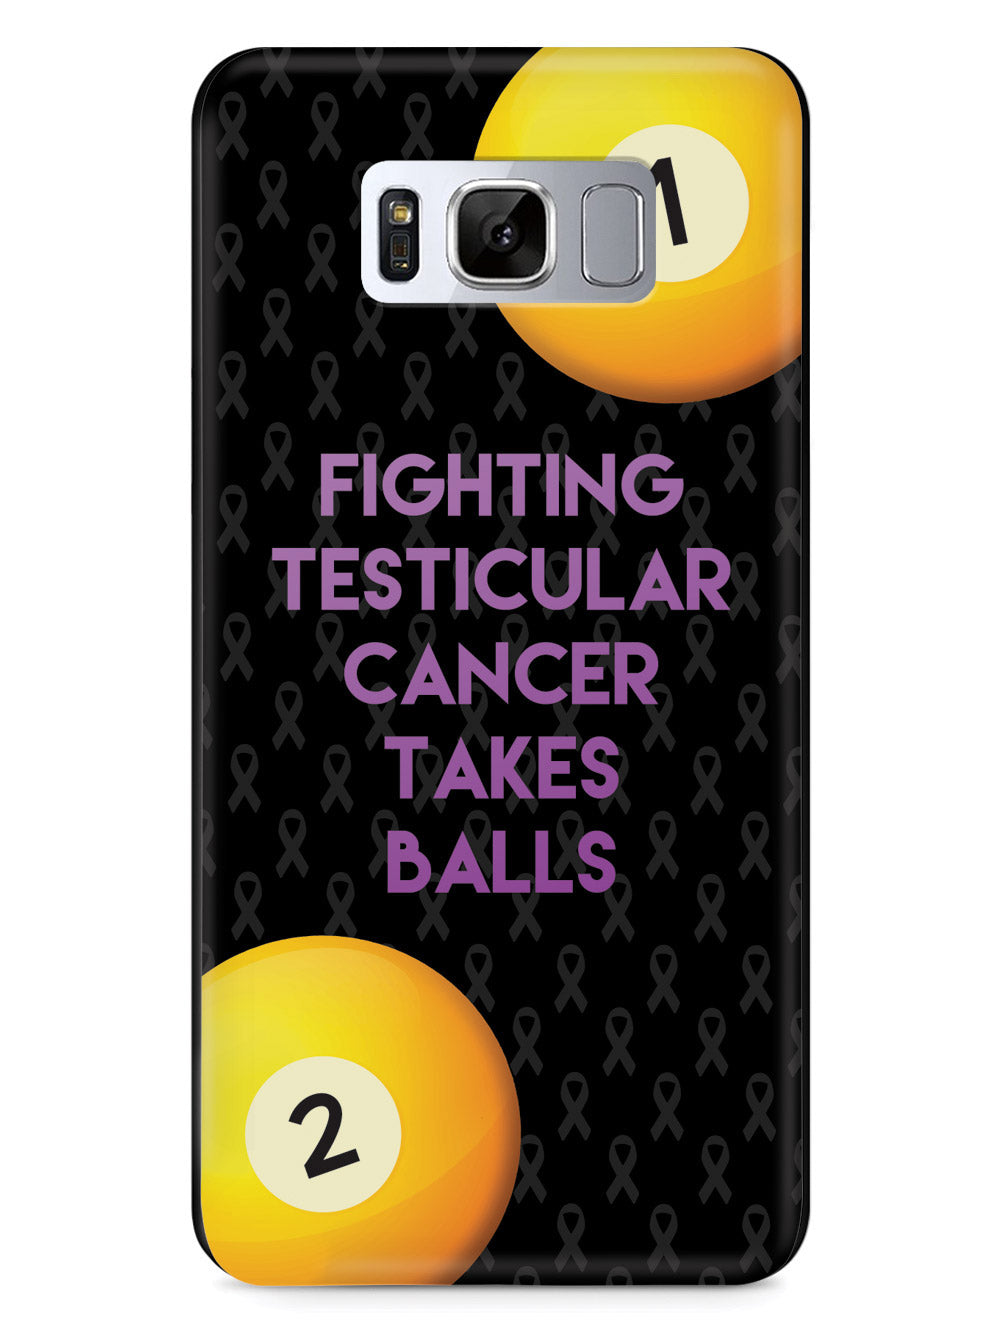 Fighting Testicular Cancer Takes Balls Case